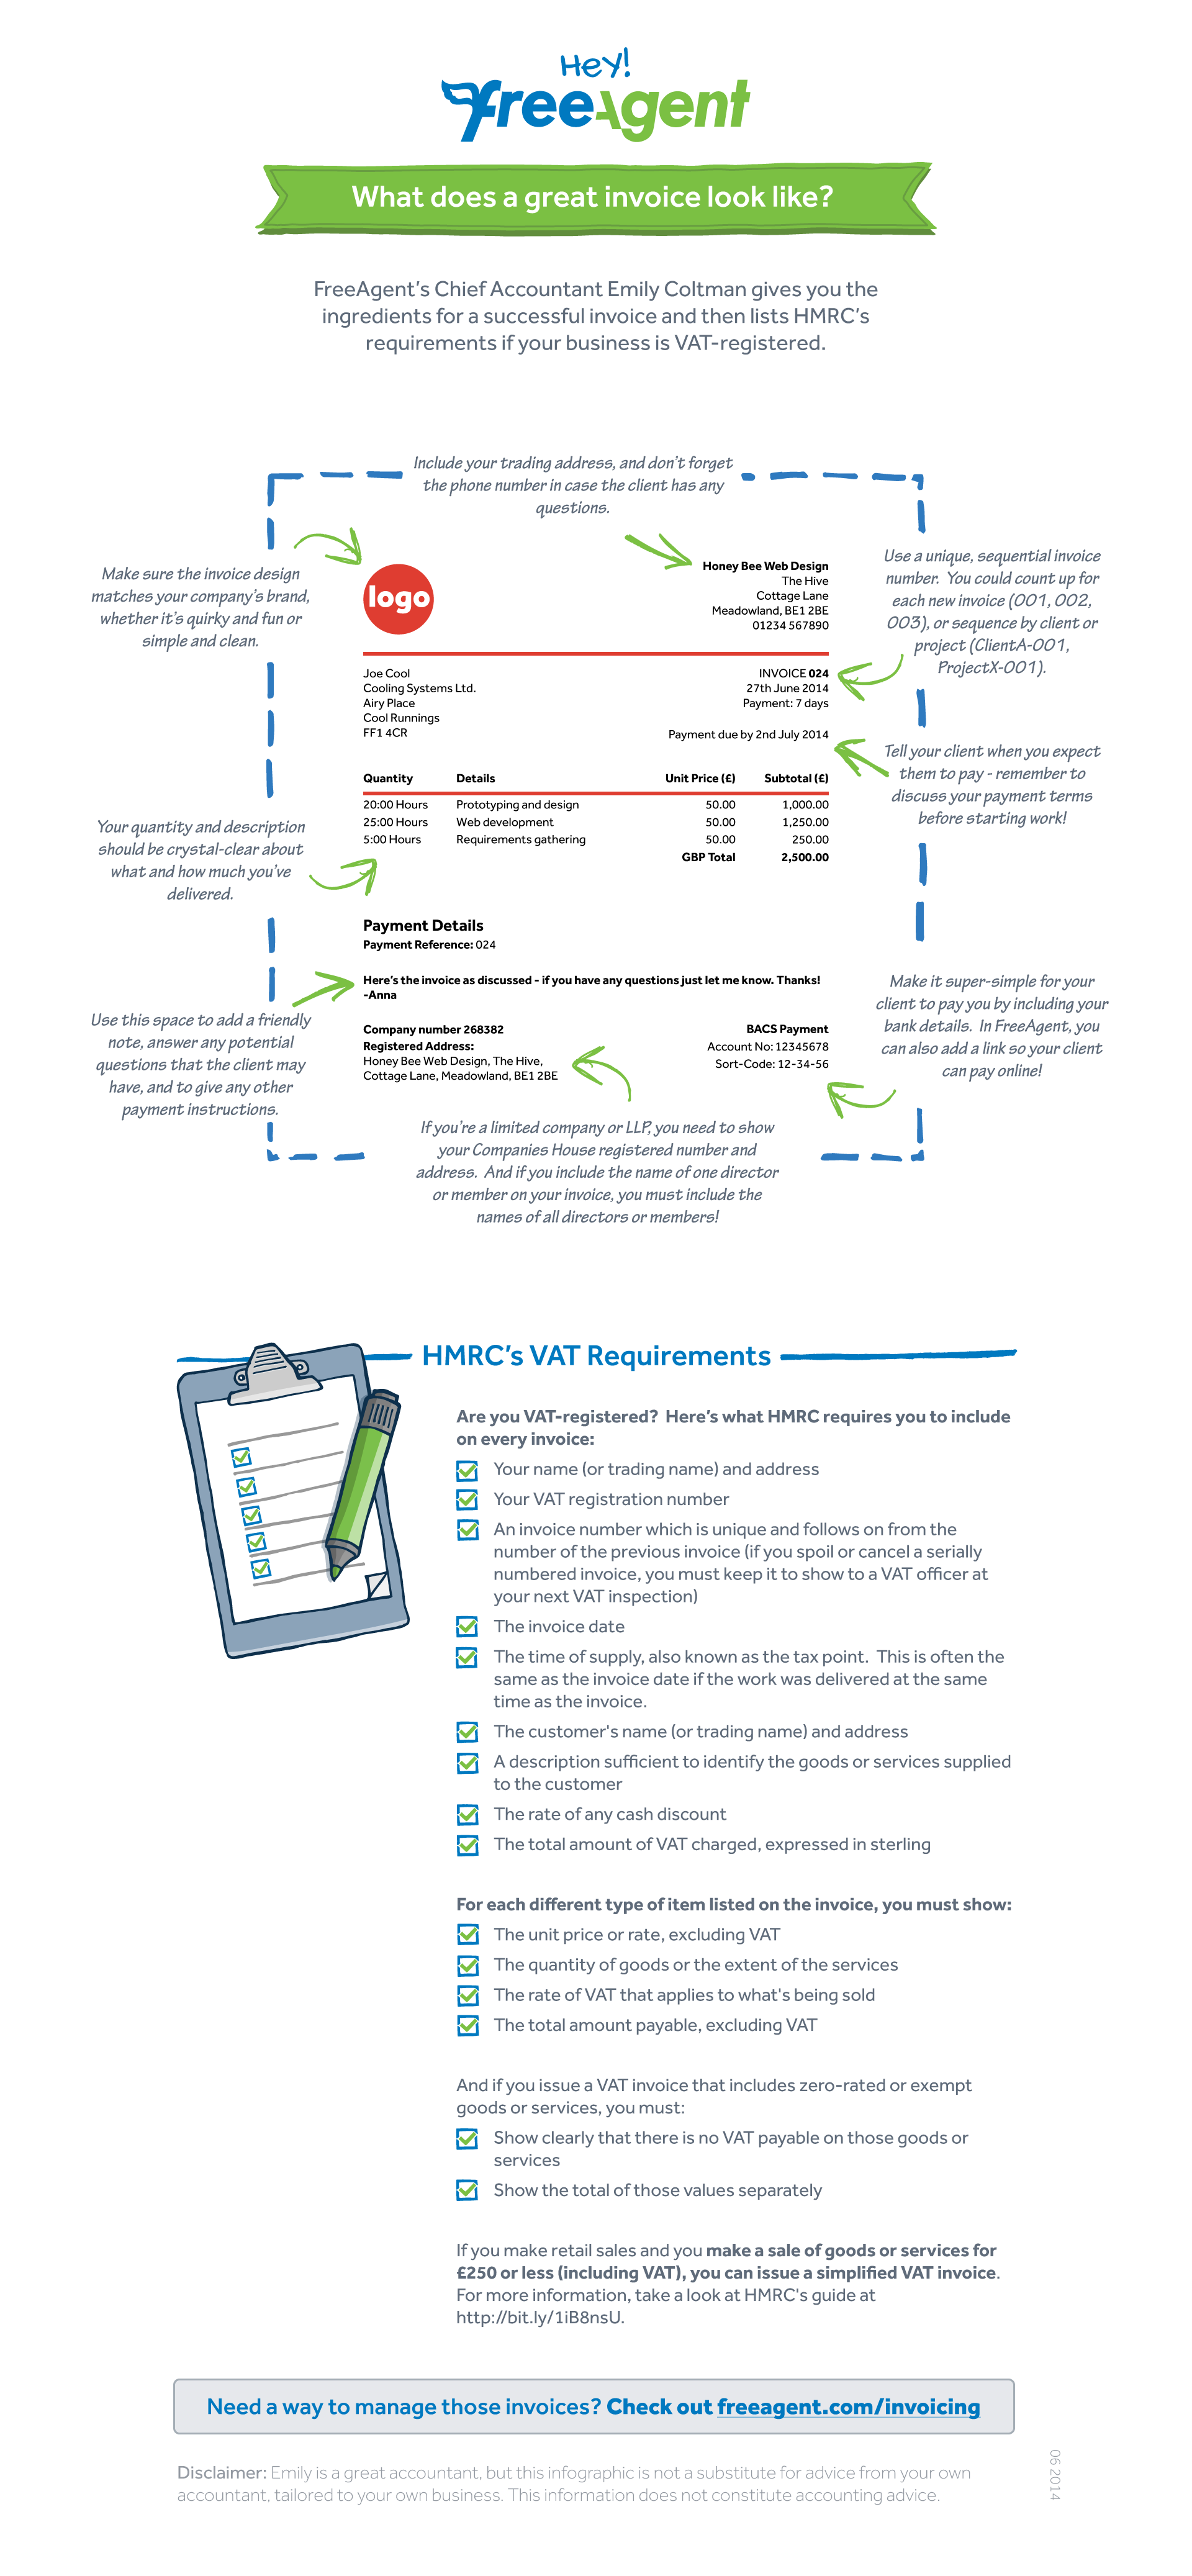 what does a great invoice look like ics